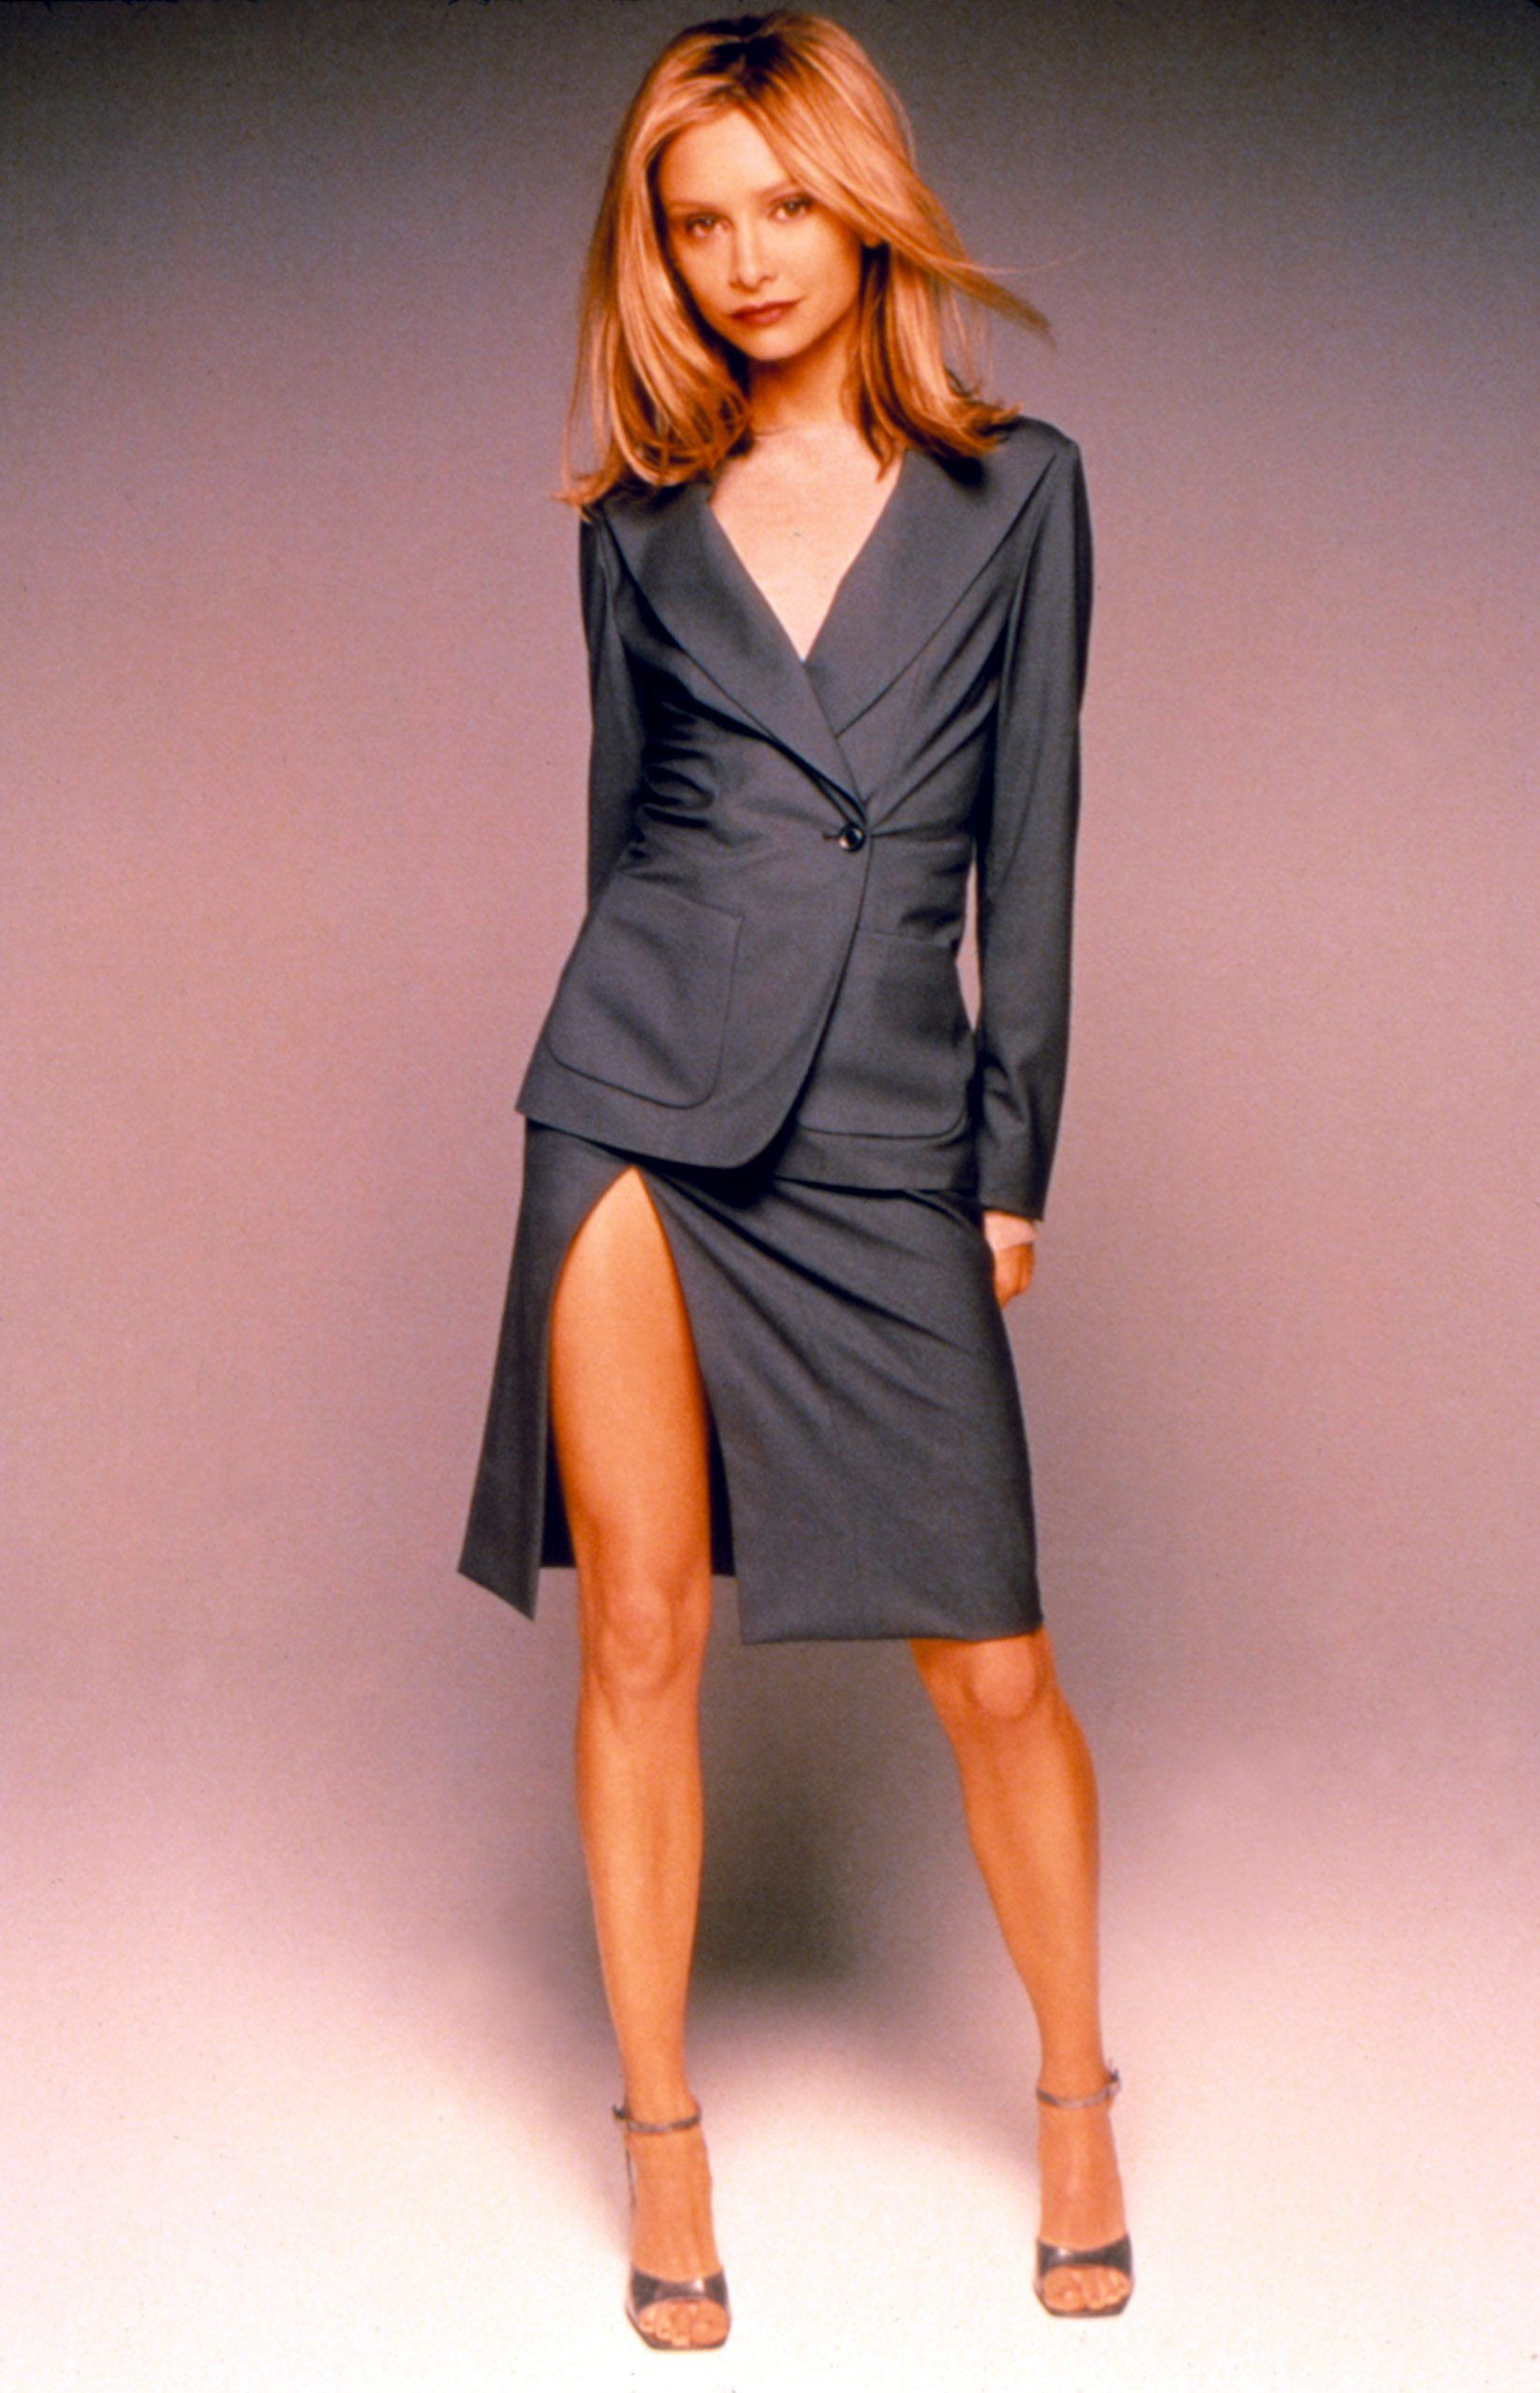 Things You Might Not Know About Ally McBeal - Fame10